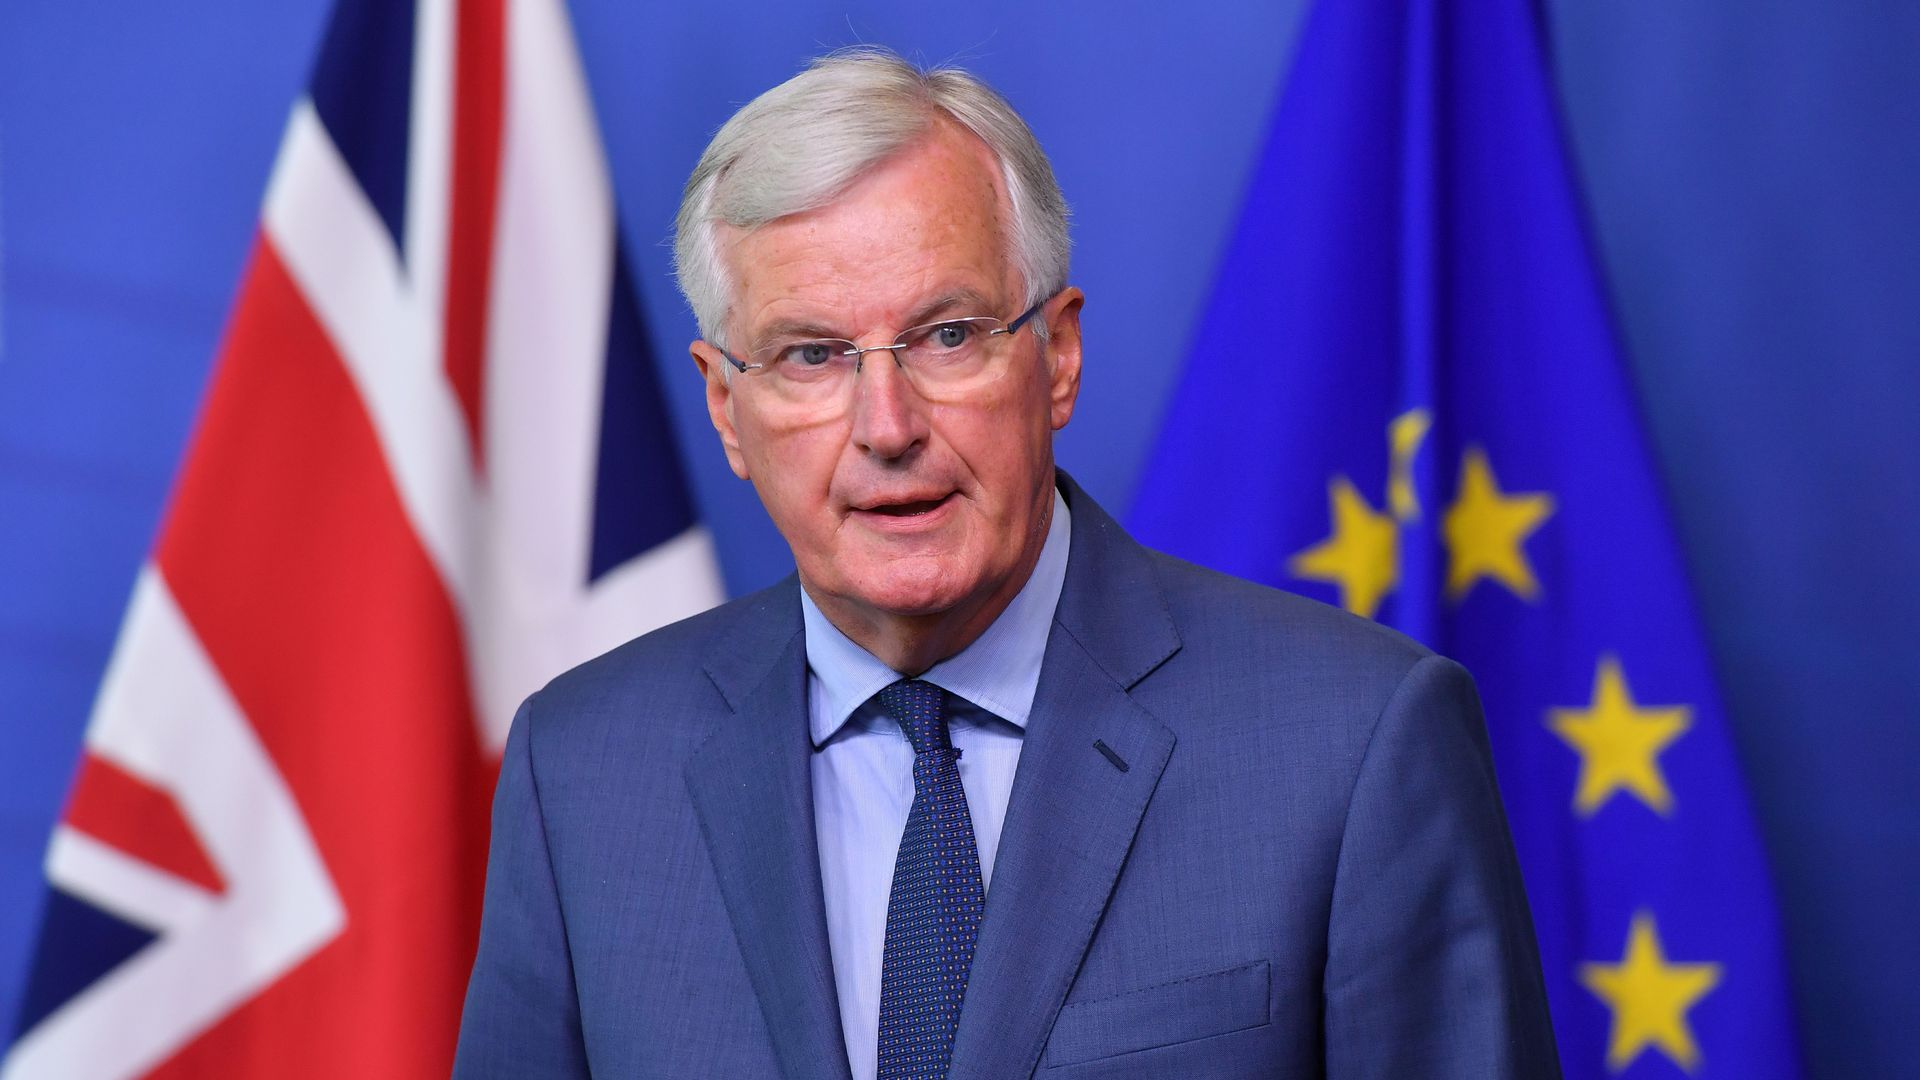 European Union Chief Brexit Negotiator Strongly Opposed To U.K. Proposal